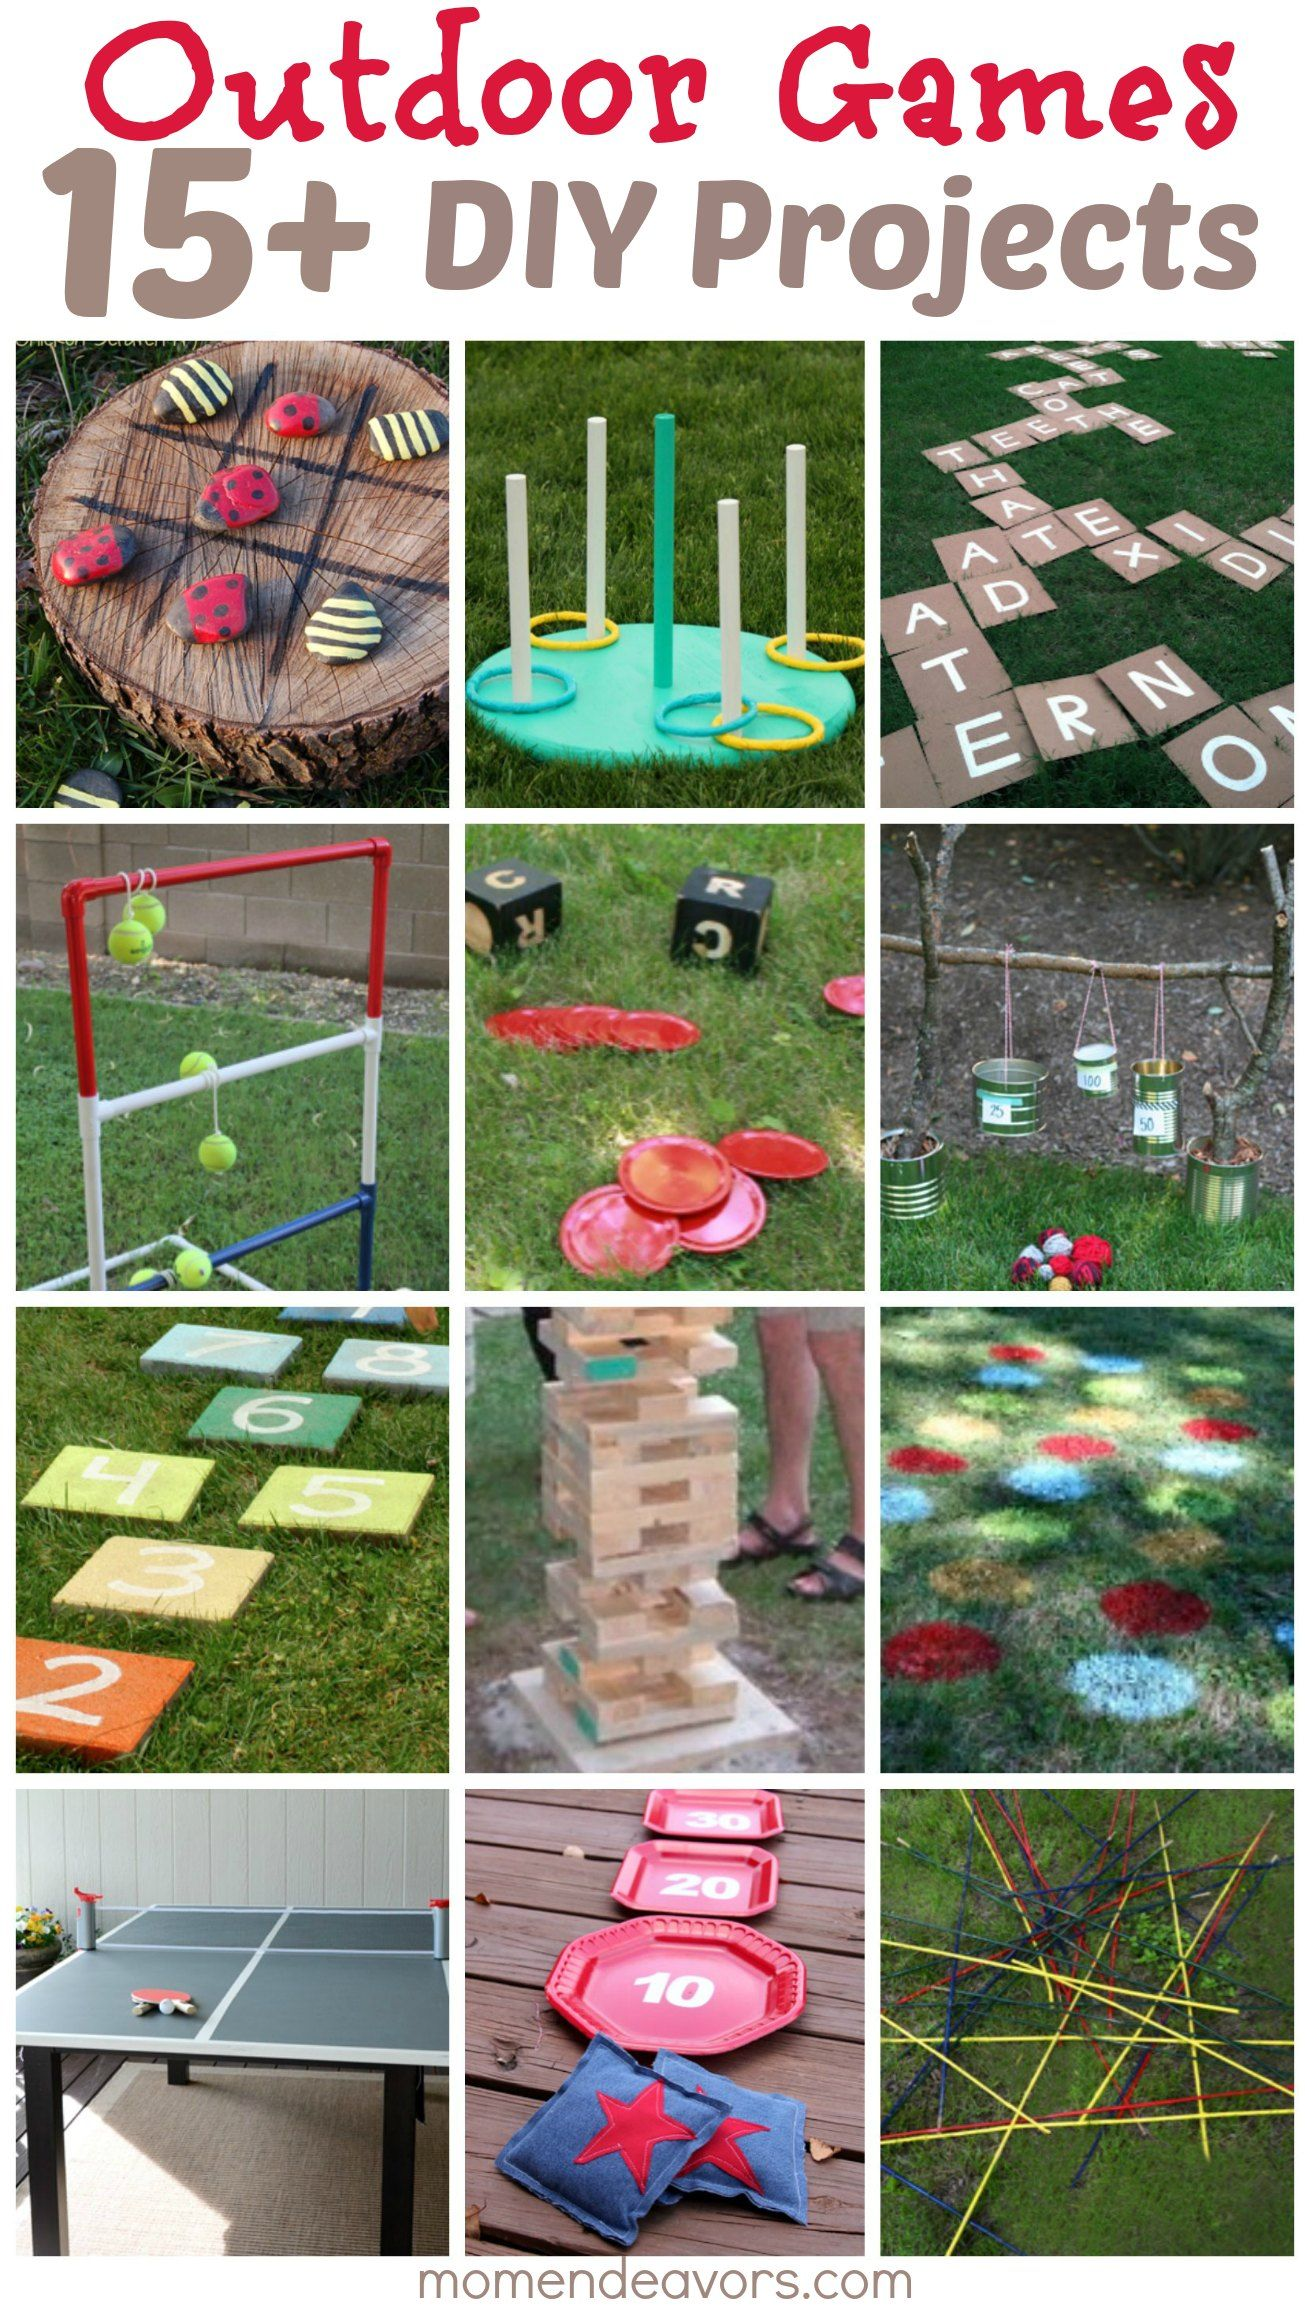 DIY Outdoor Games — 15 Awesome Project Ideas for Backyard Fun